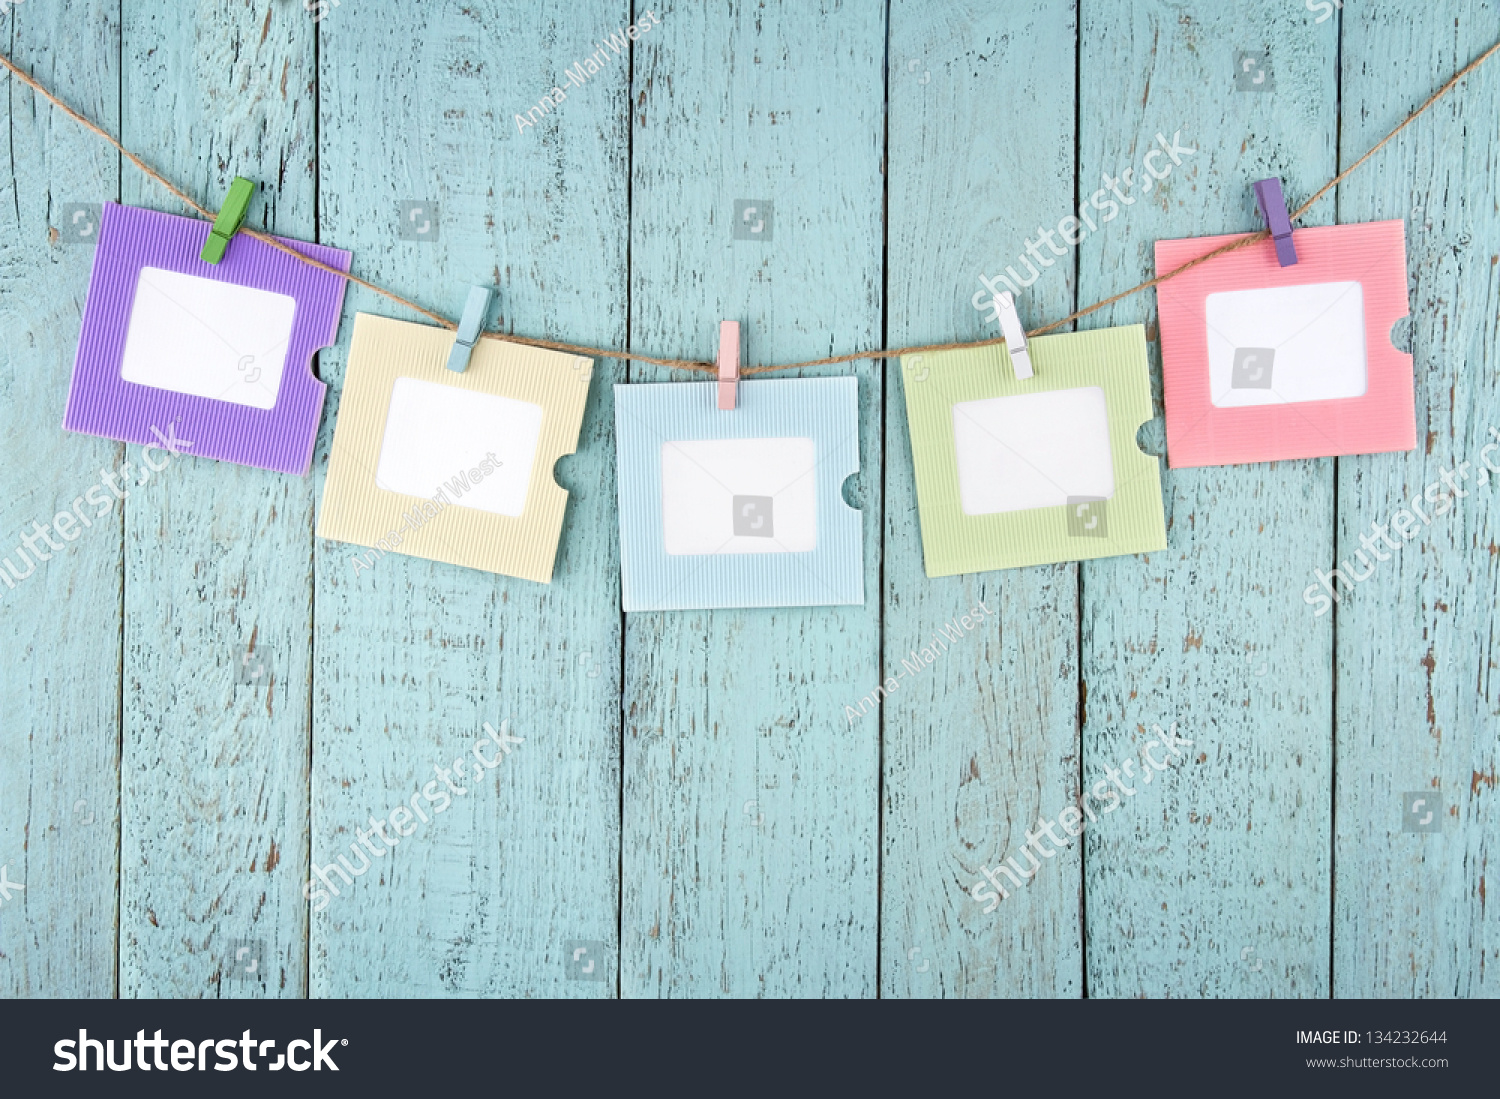 five empty colorful photo frames or notes paper hanging with clothespins on wooden blue vintage shabby